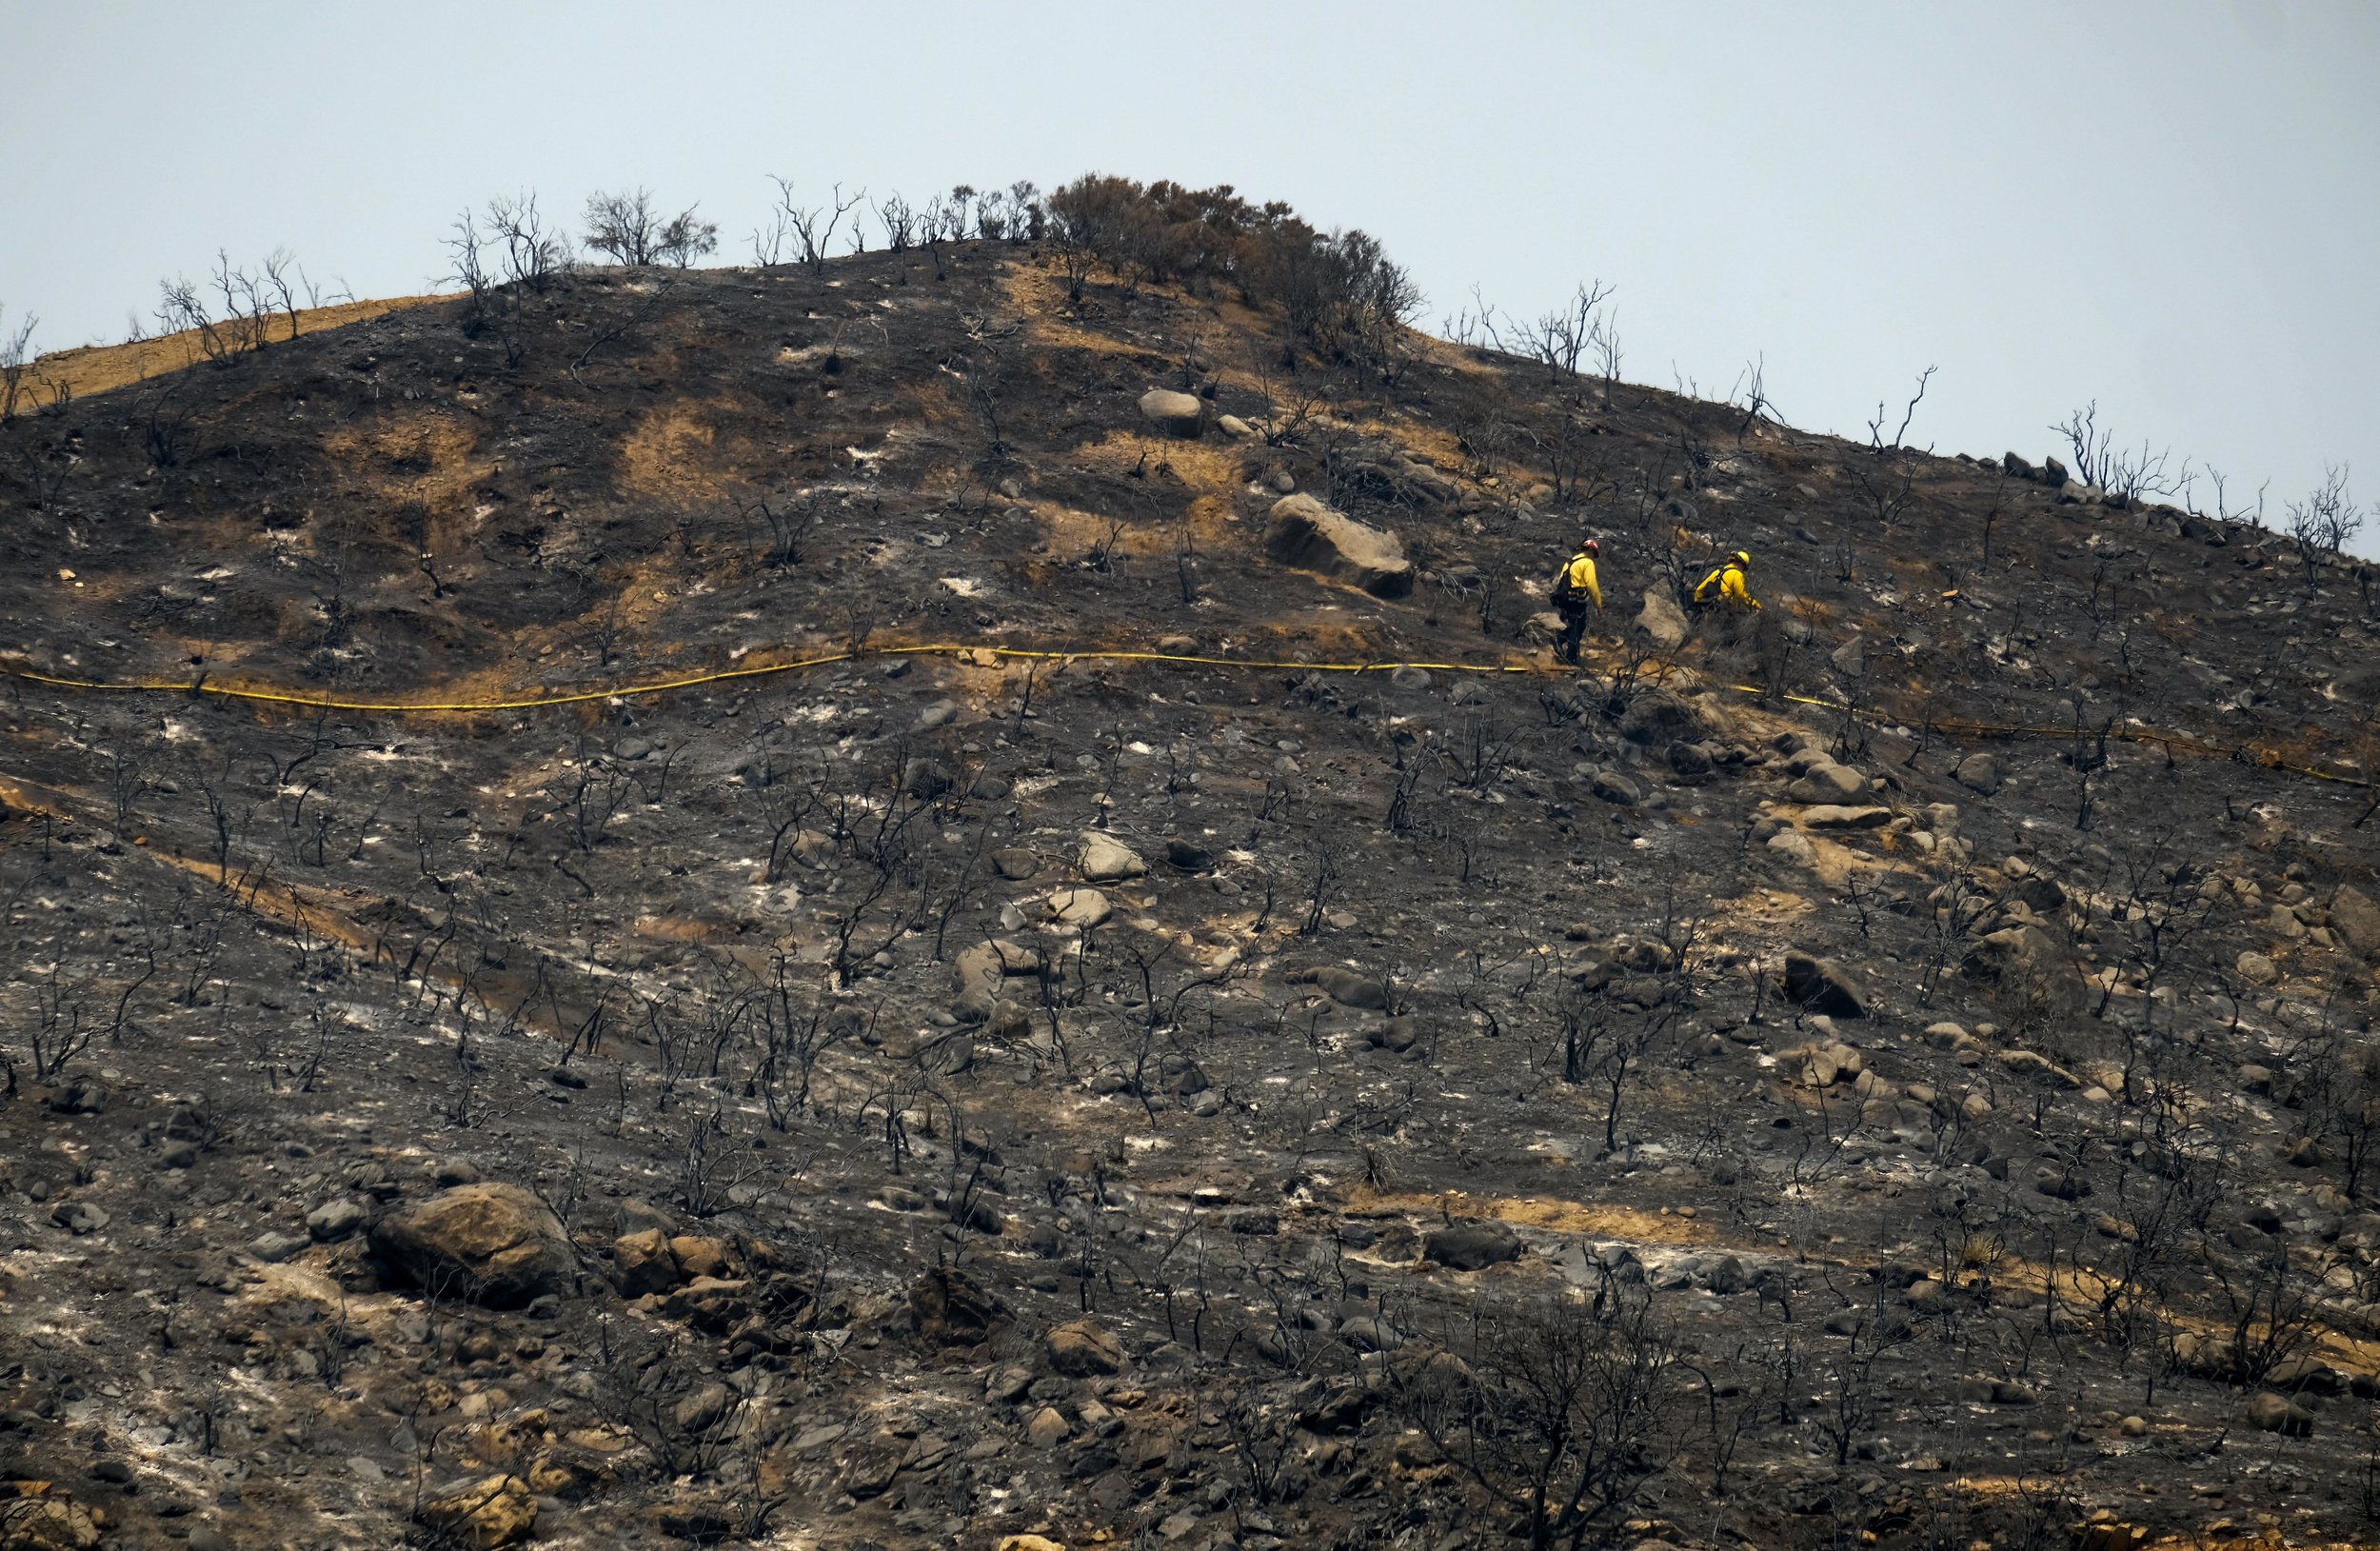 Firefighters walk through the burned area at the Holy Fire in Lake Elsinore, California, southeast of Los Angeles, on August 11, 2018. The fire has burned 21,473 acres and was 29 percent contained as of 8:30 a.m. Saturday, according to the Cleveland National Forest.